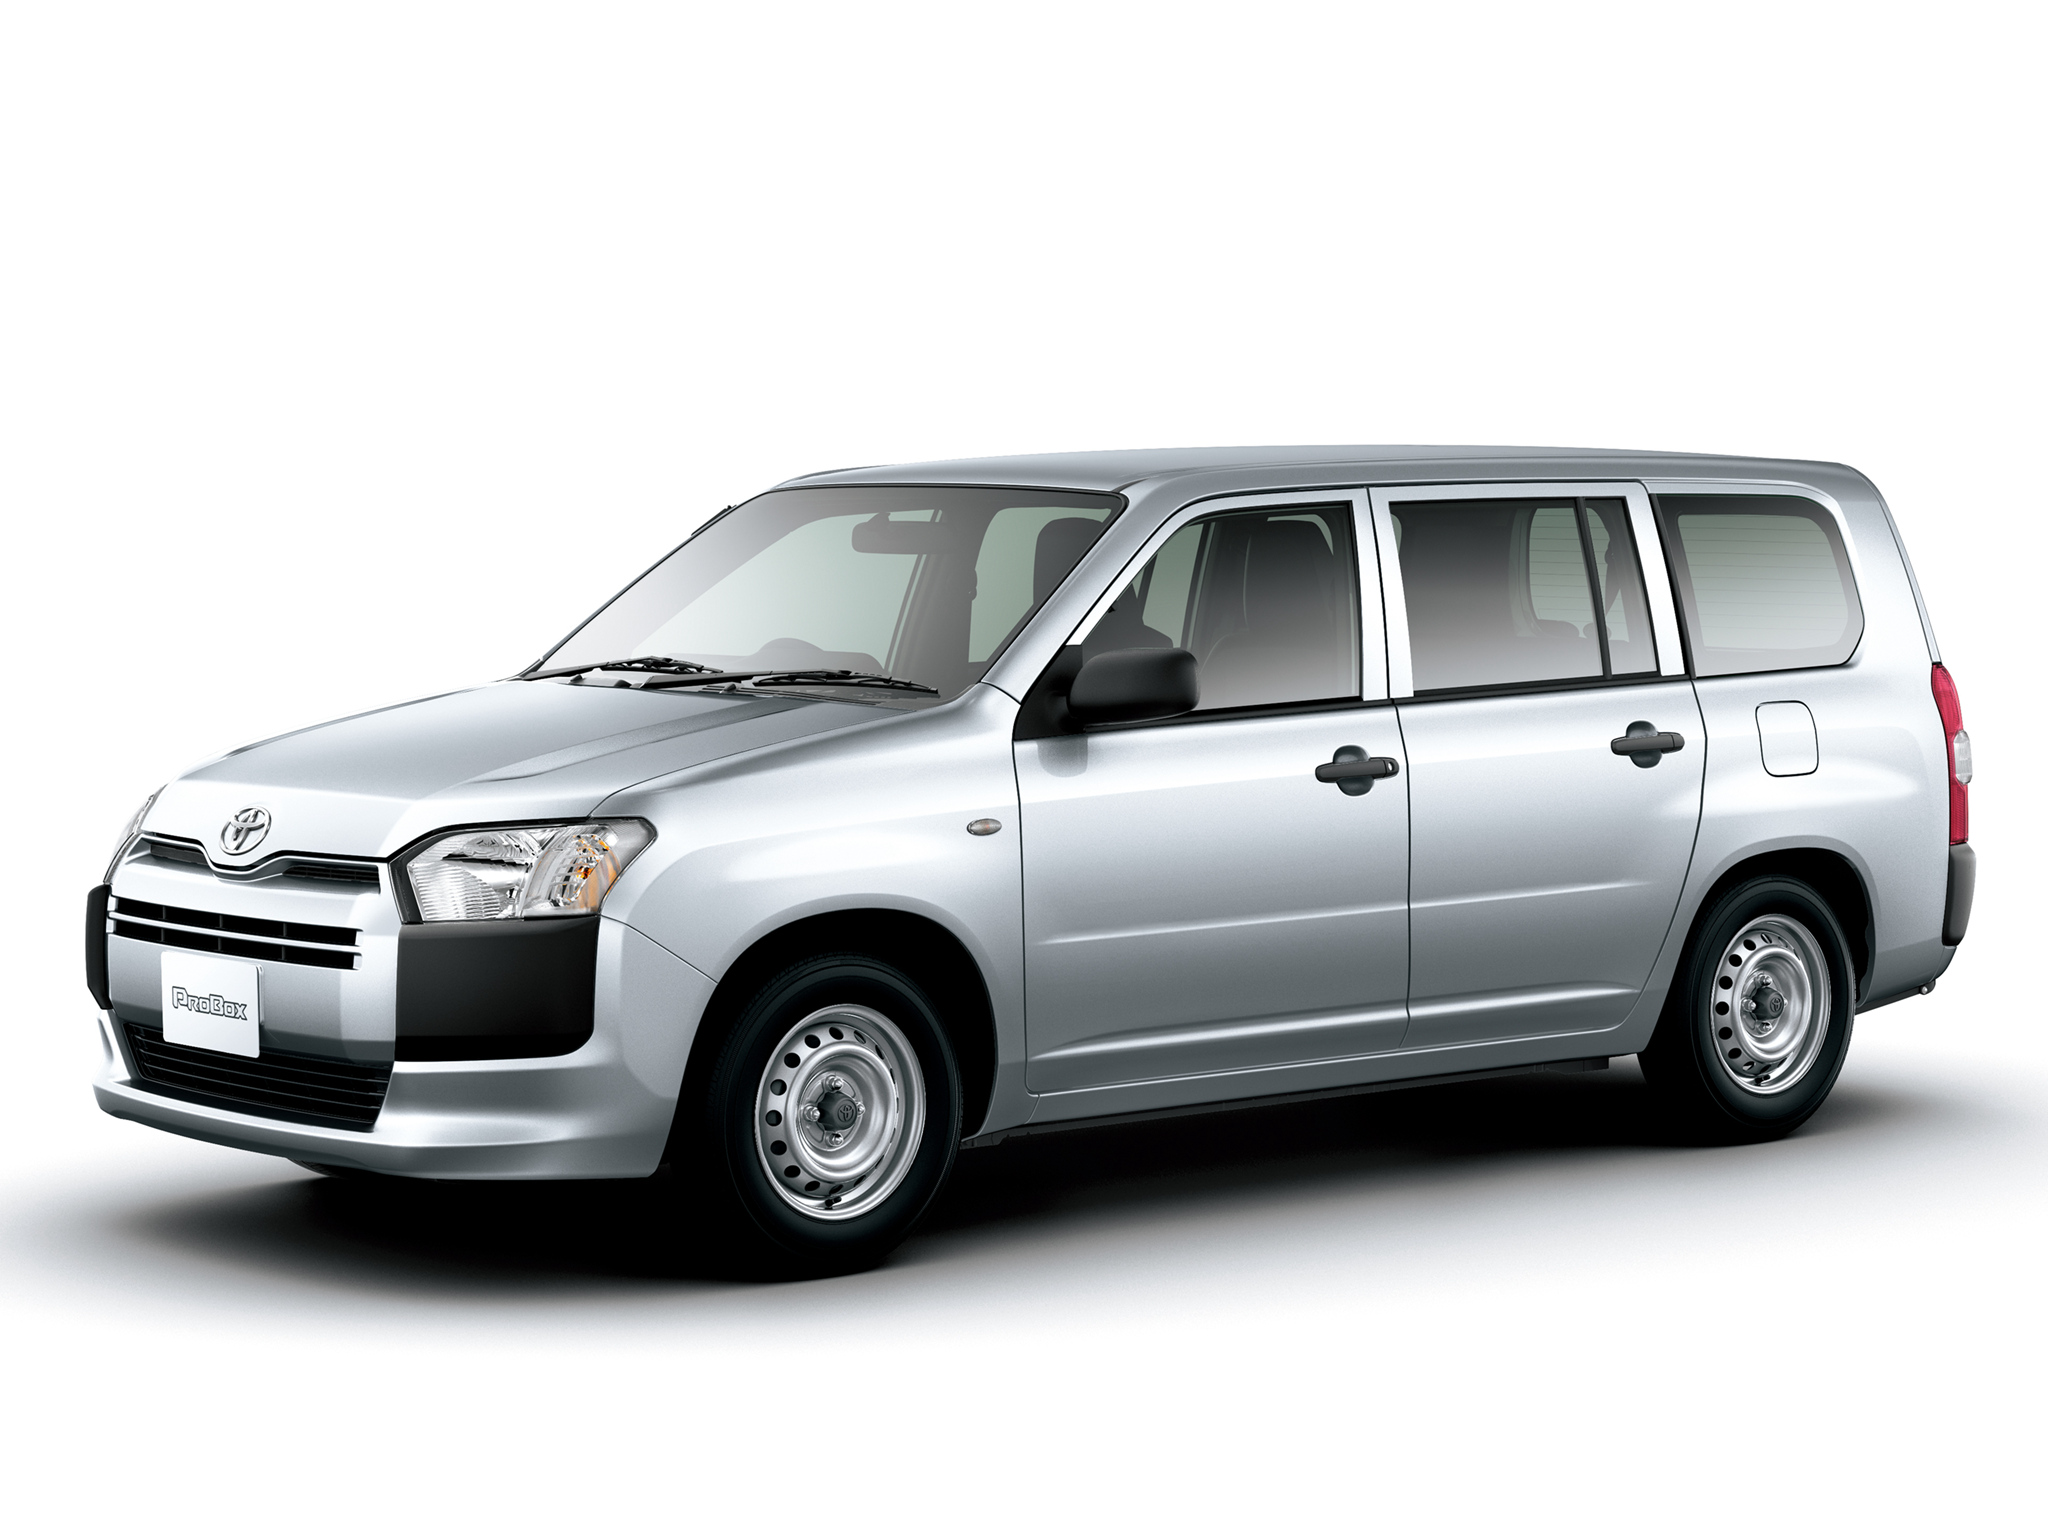 Toyota Launches New Probox And Succeed In Japan Photo Gallery